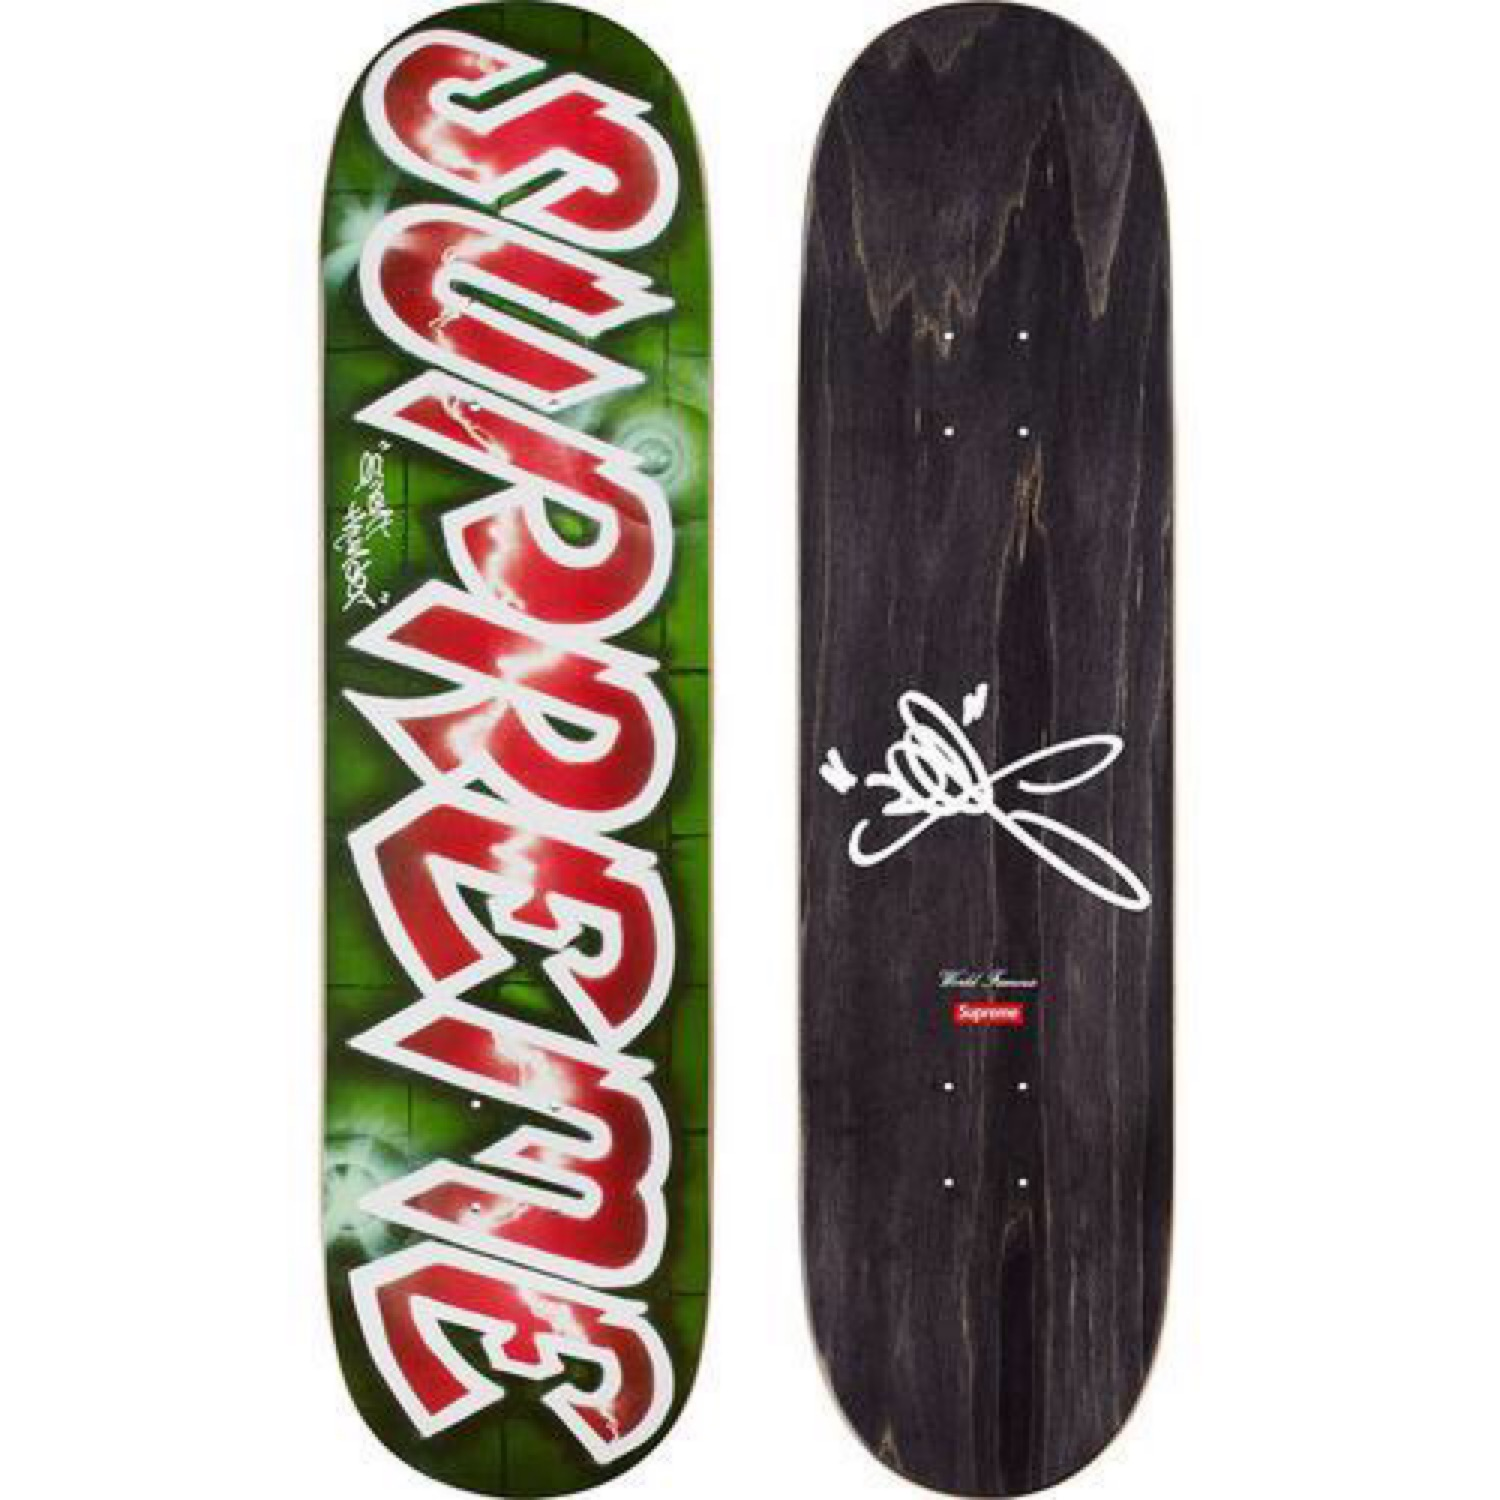 Supreme Lee Quinones Skateboard Deck Red (New)